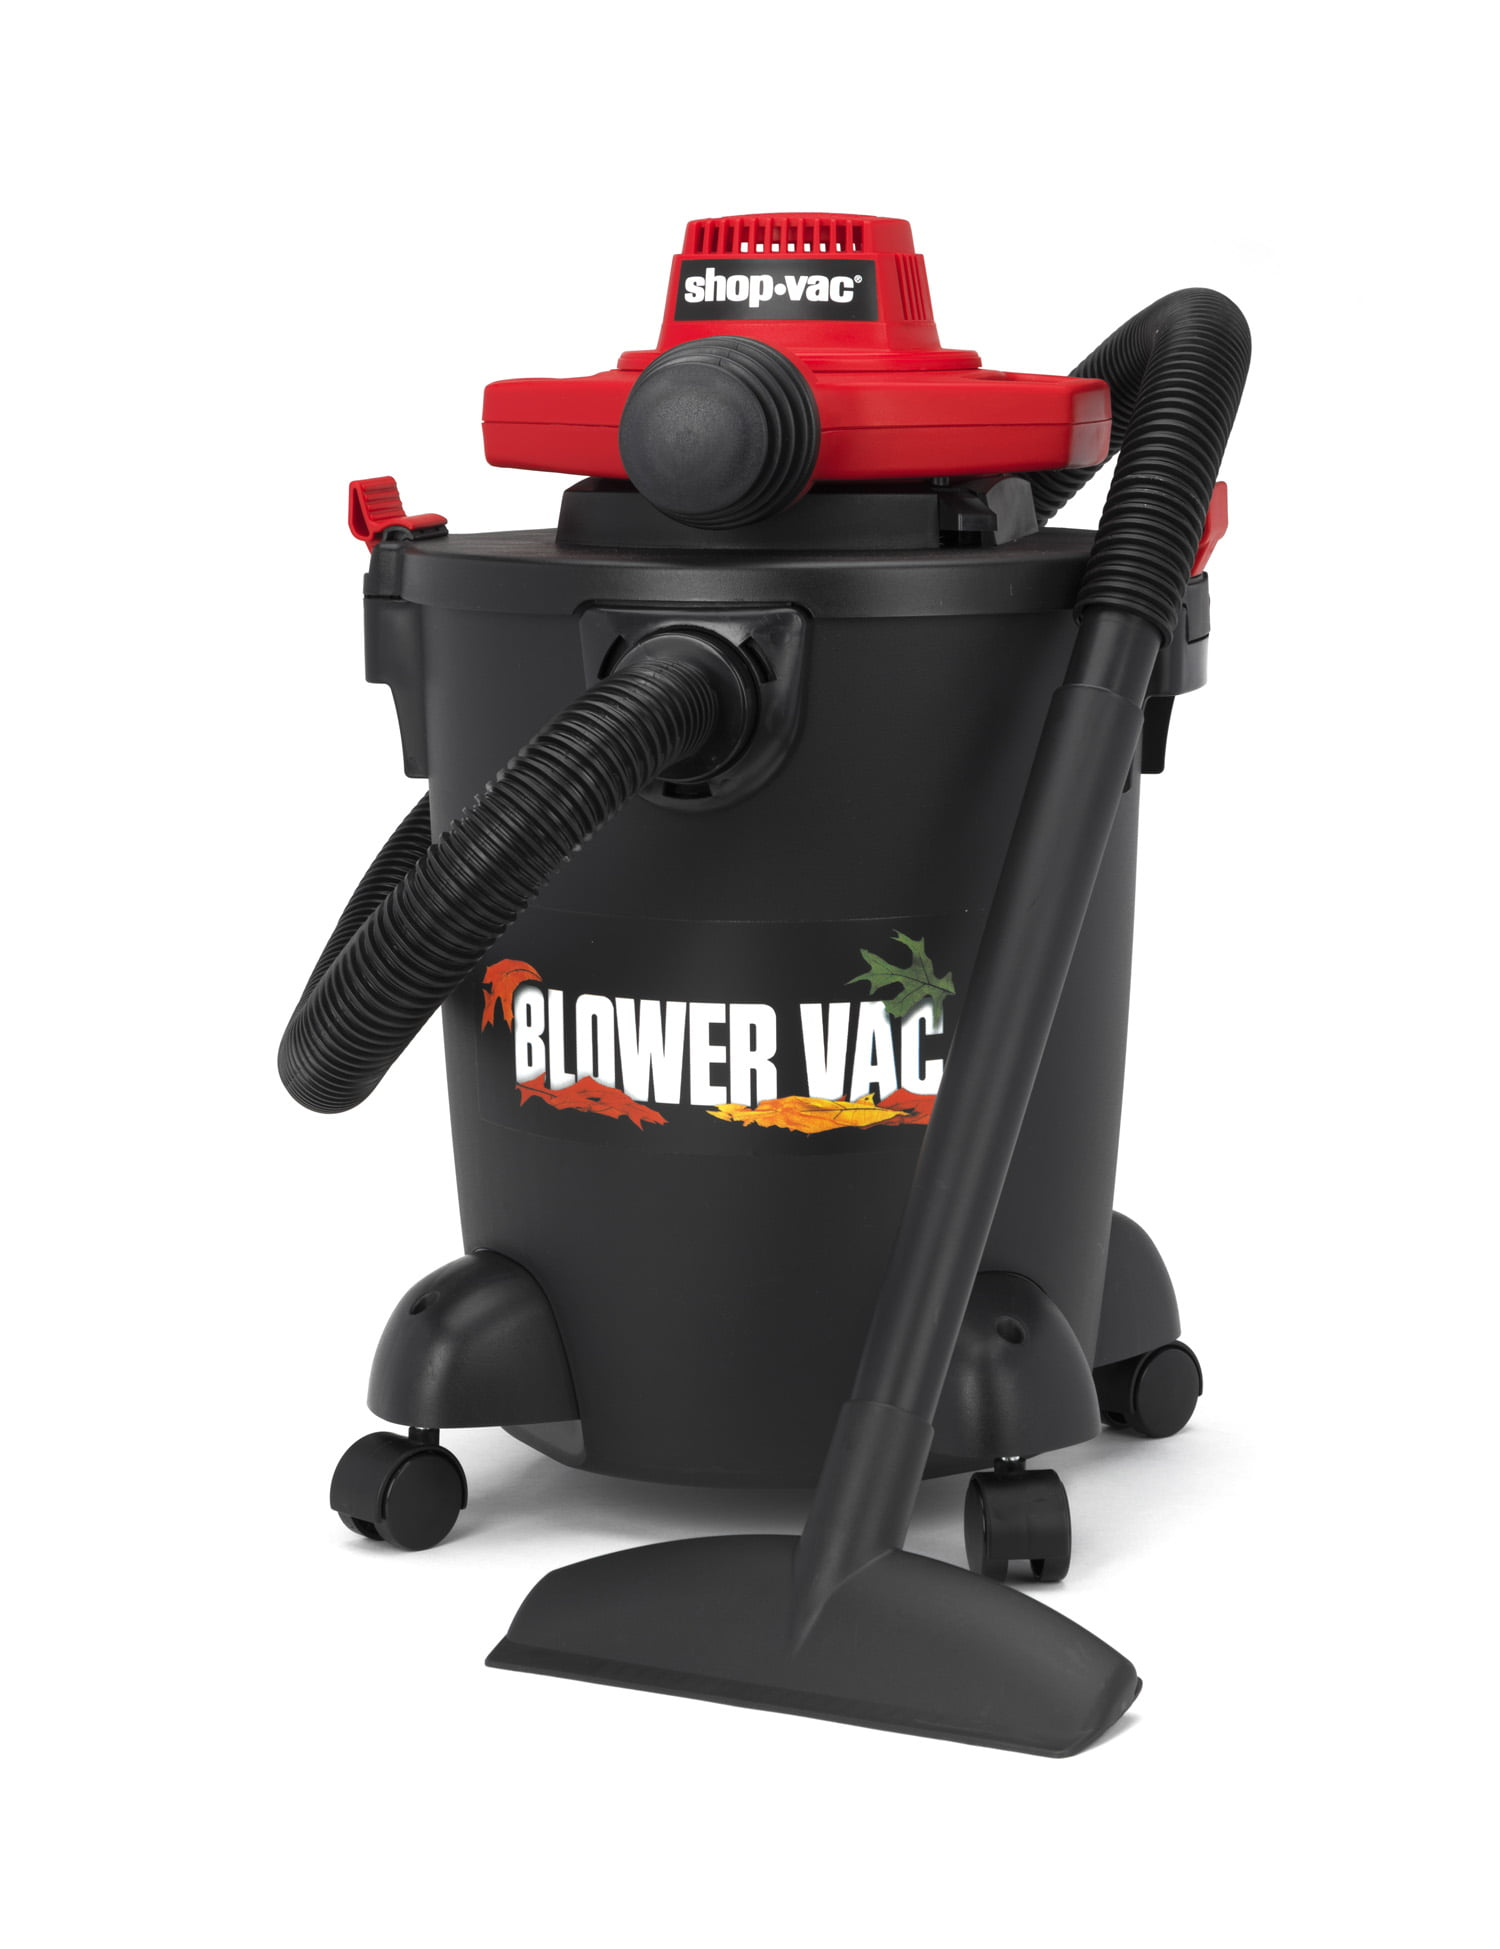 Shop-Vac 6 gallon 4.0 pHP Wet Dry Vac with Detachable Blower Feature 3333627 by Shop-Vac Corp